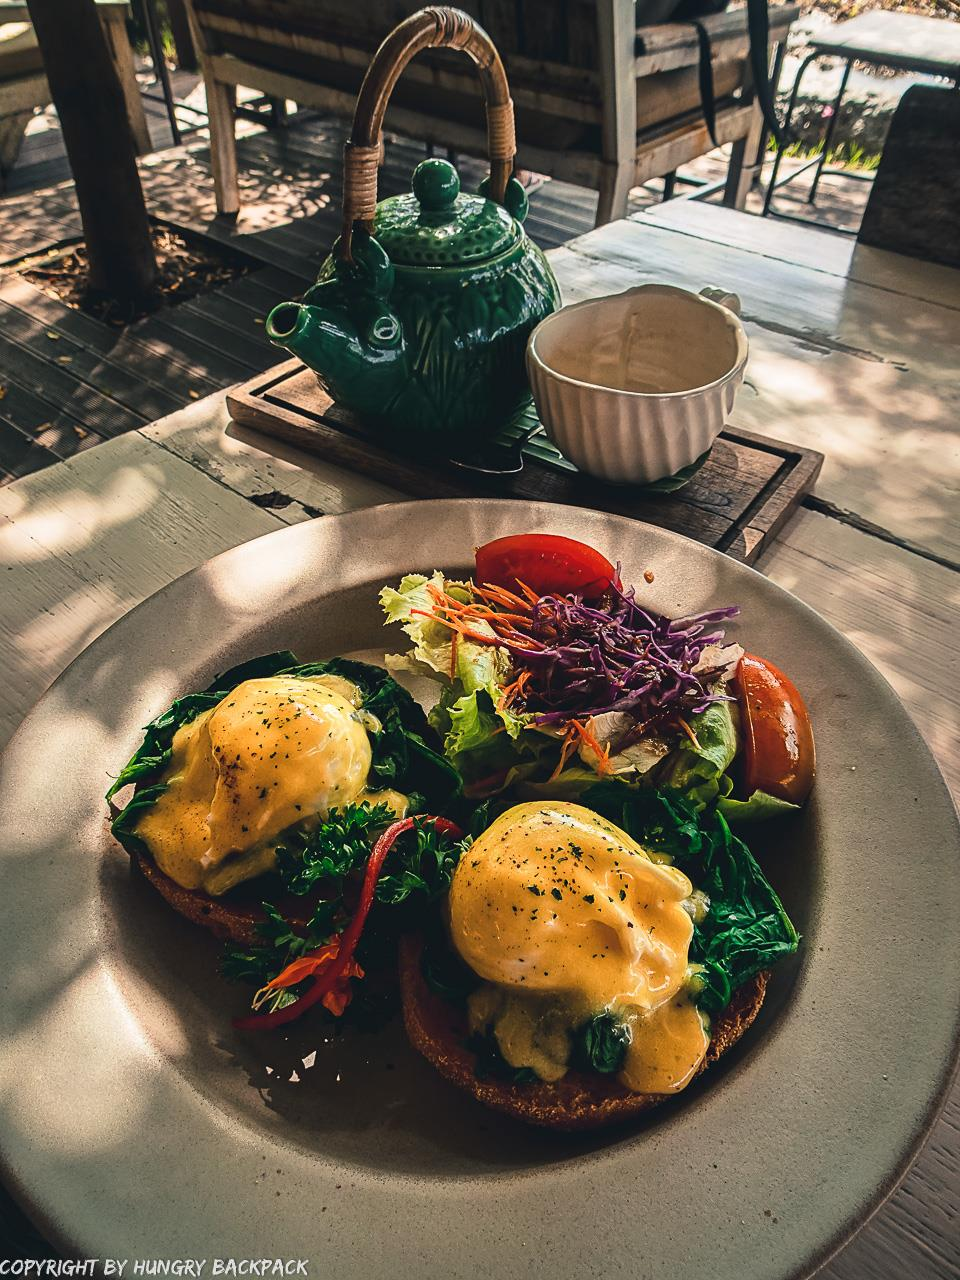 work-friendly cafes Canggu_Nook_eggs bennedict with tea